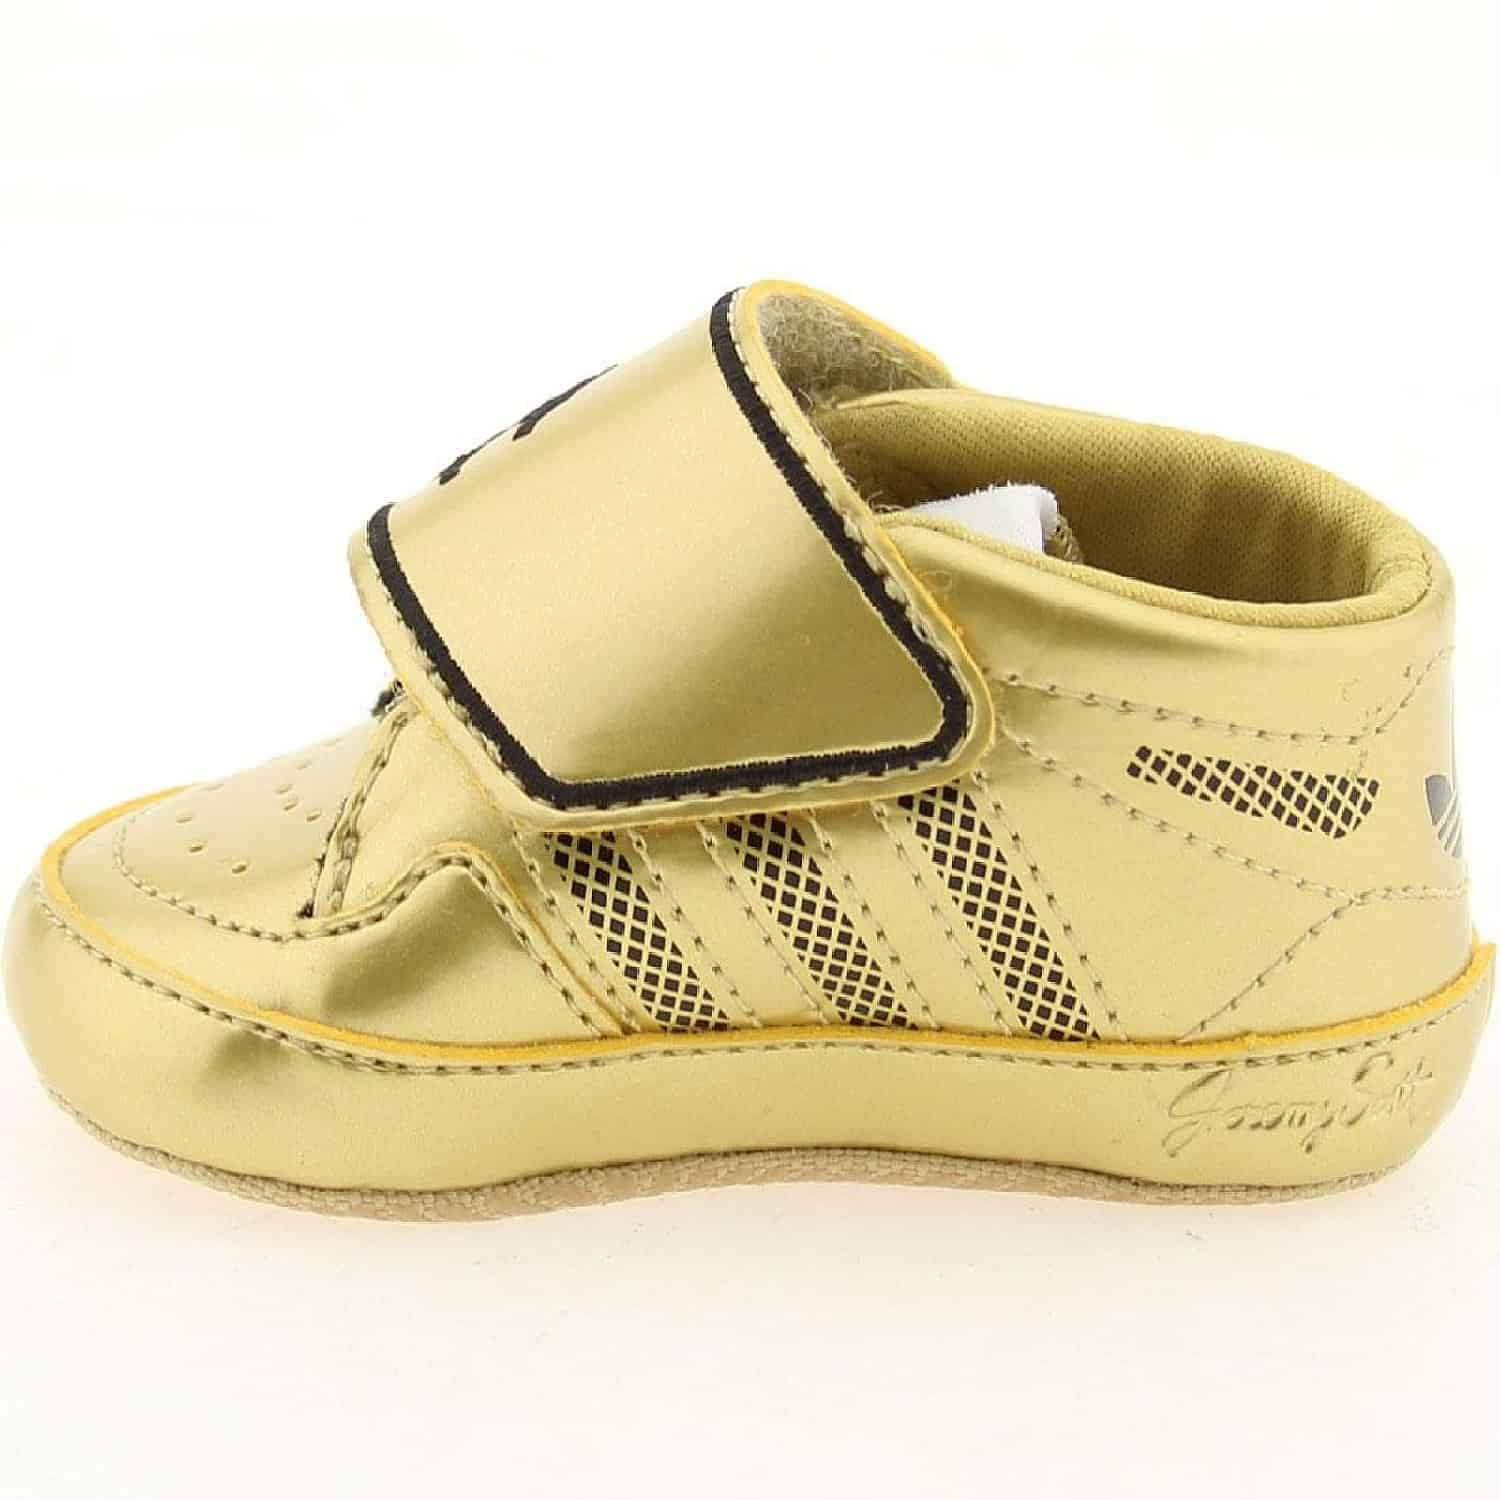 sneakers infant buy scott gold shoes noveltystreet jeremy baby cribpack adidas newborn wings item